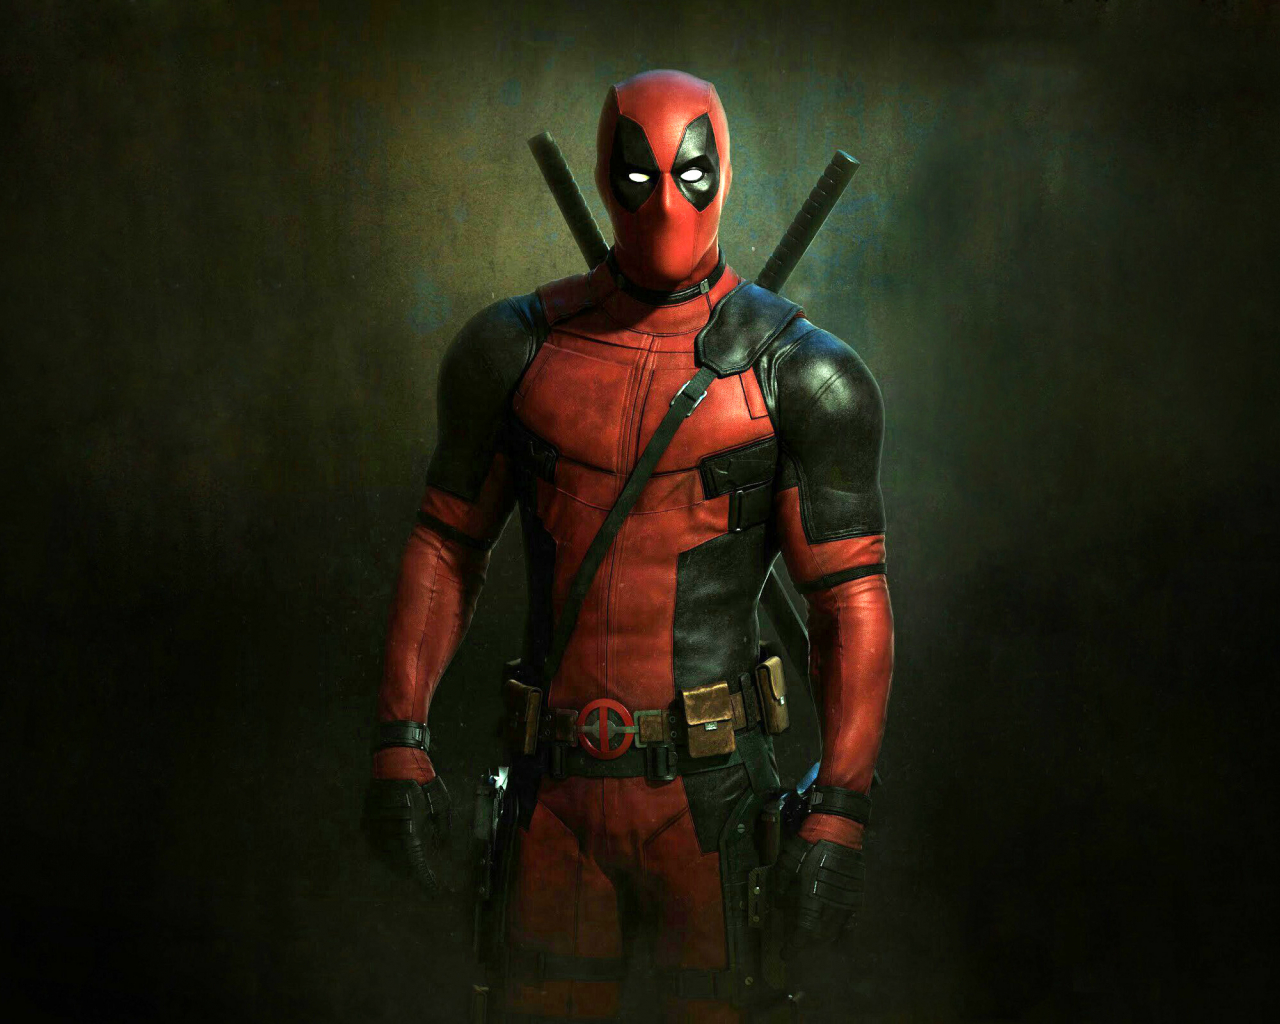 Free Download Deadpool Wallpapers Hd Wallpapers 2560x1600